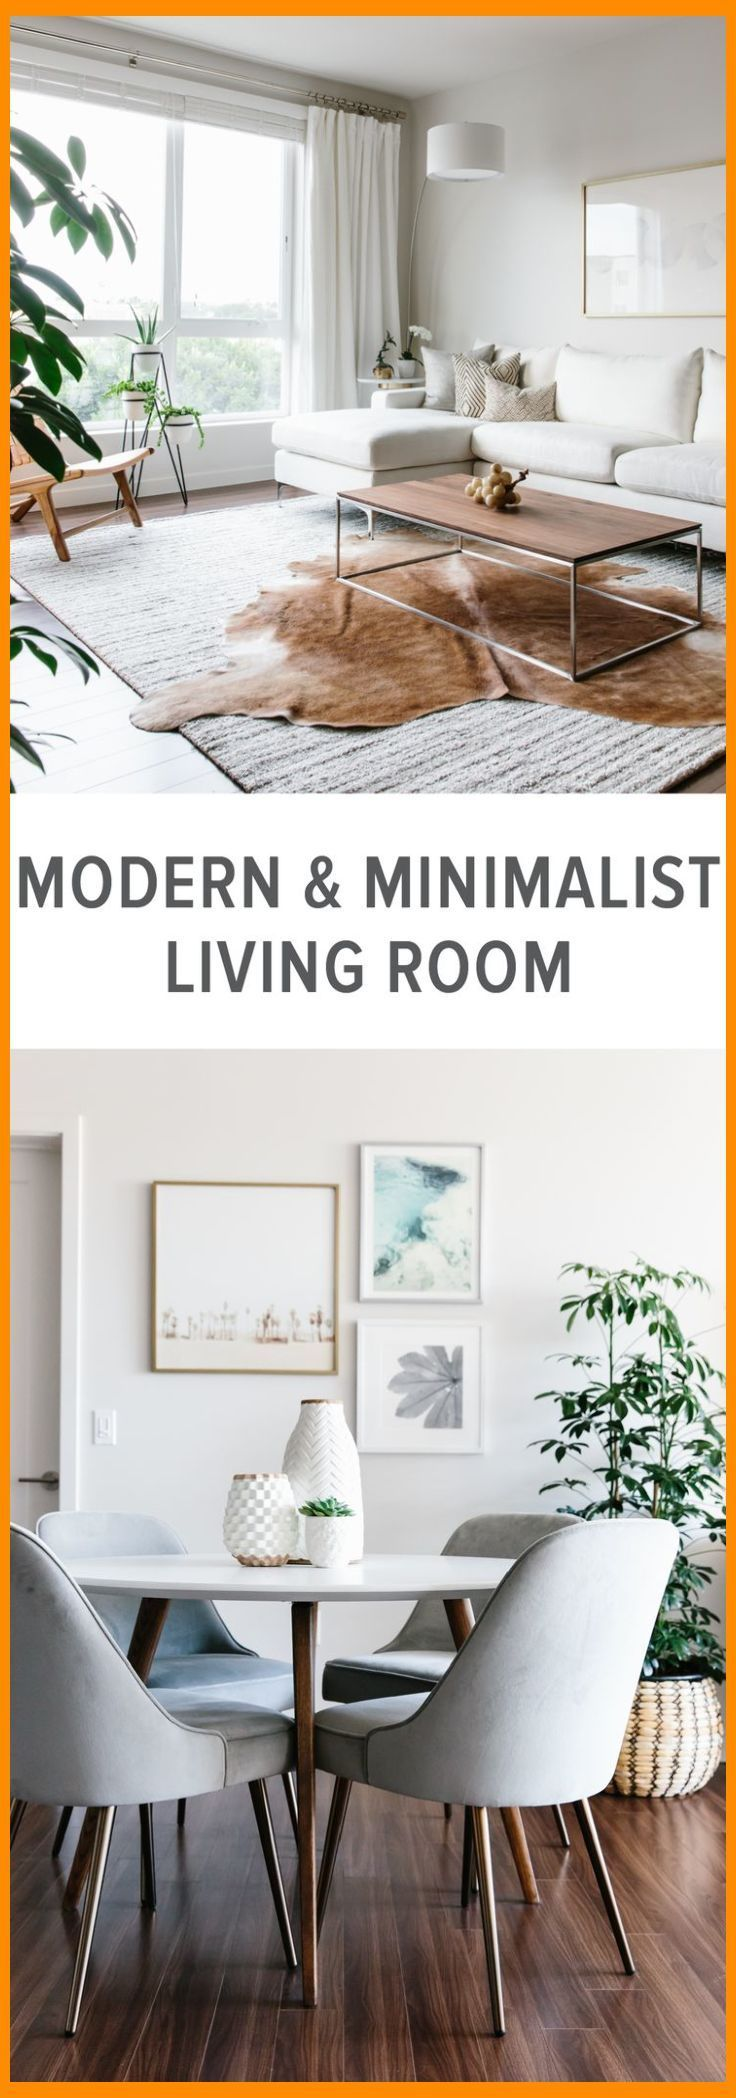 Designing My Modern and Minimalist Living Room with Havenly   Minimalist Living Room   Minima... #havenlylivingroom Produce a minimalist living-room with these design ideas and inspiring pictures for a basic, smooth and modern look. #sofatamujepara #Downshiftology... #havenlylivingroom